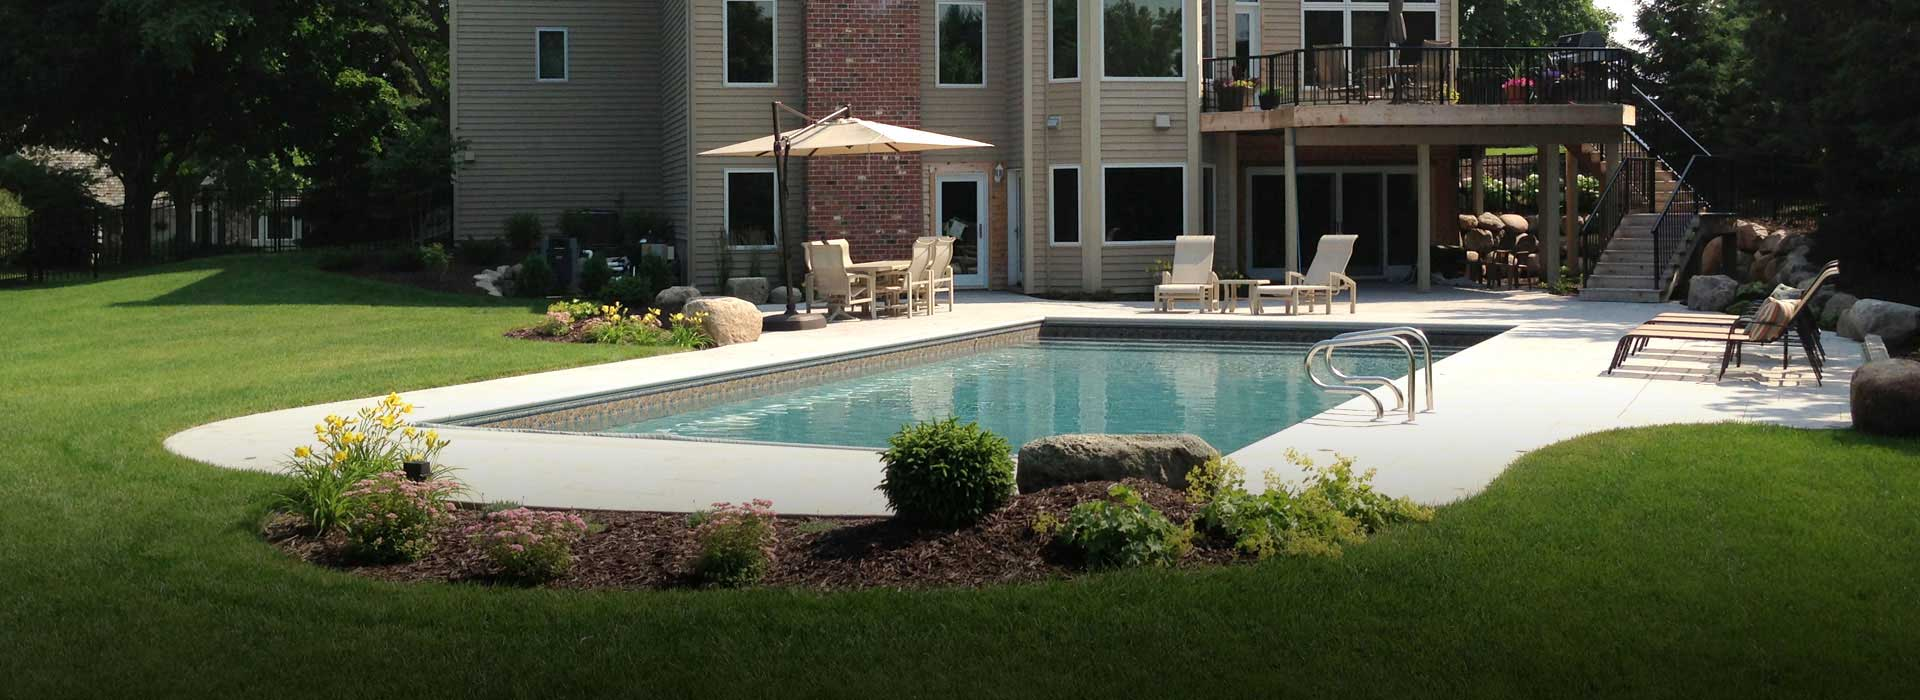 Custom pools inc pools minneapolis swimming pools st for Custom indoor pools